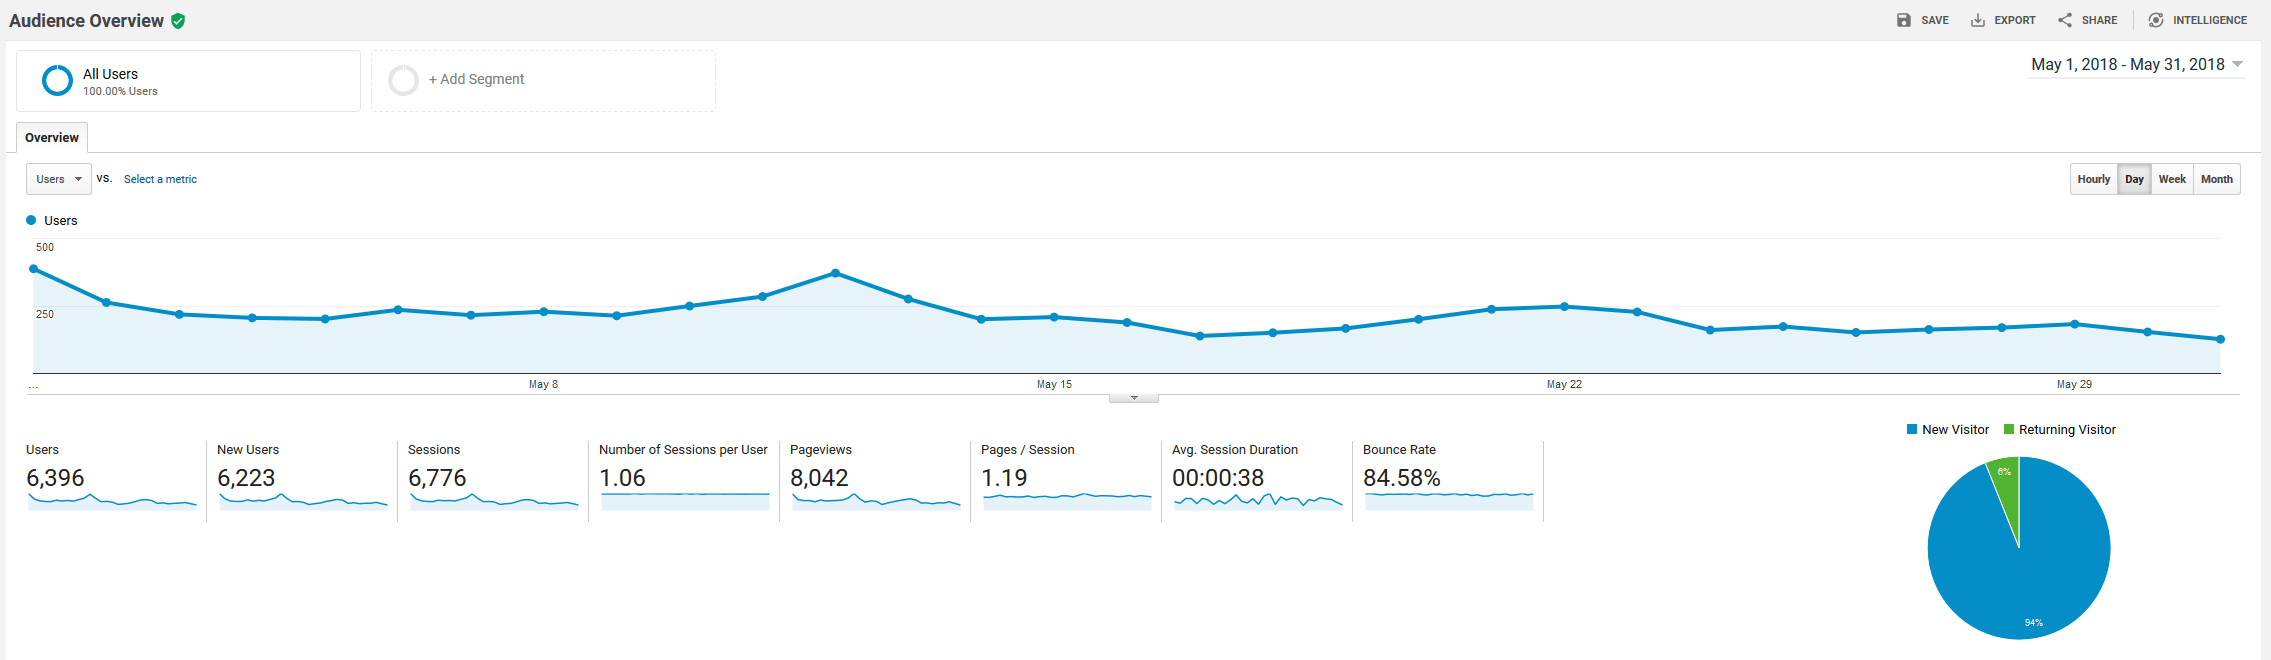 May 2018 Google Analytics roseclearfield.com | http://www.roseclearfield.com